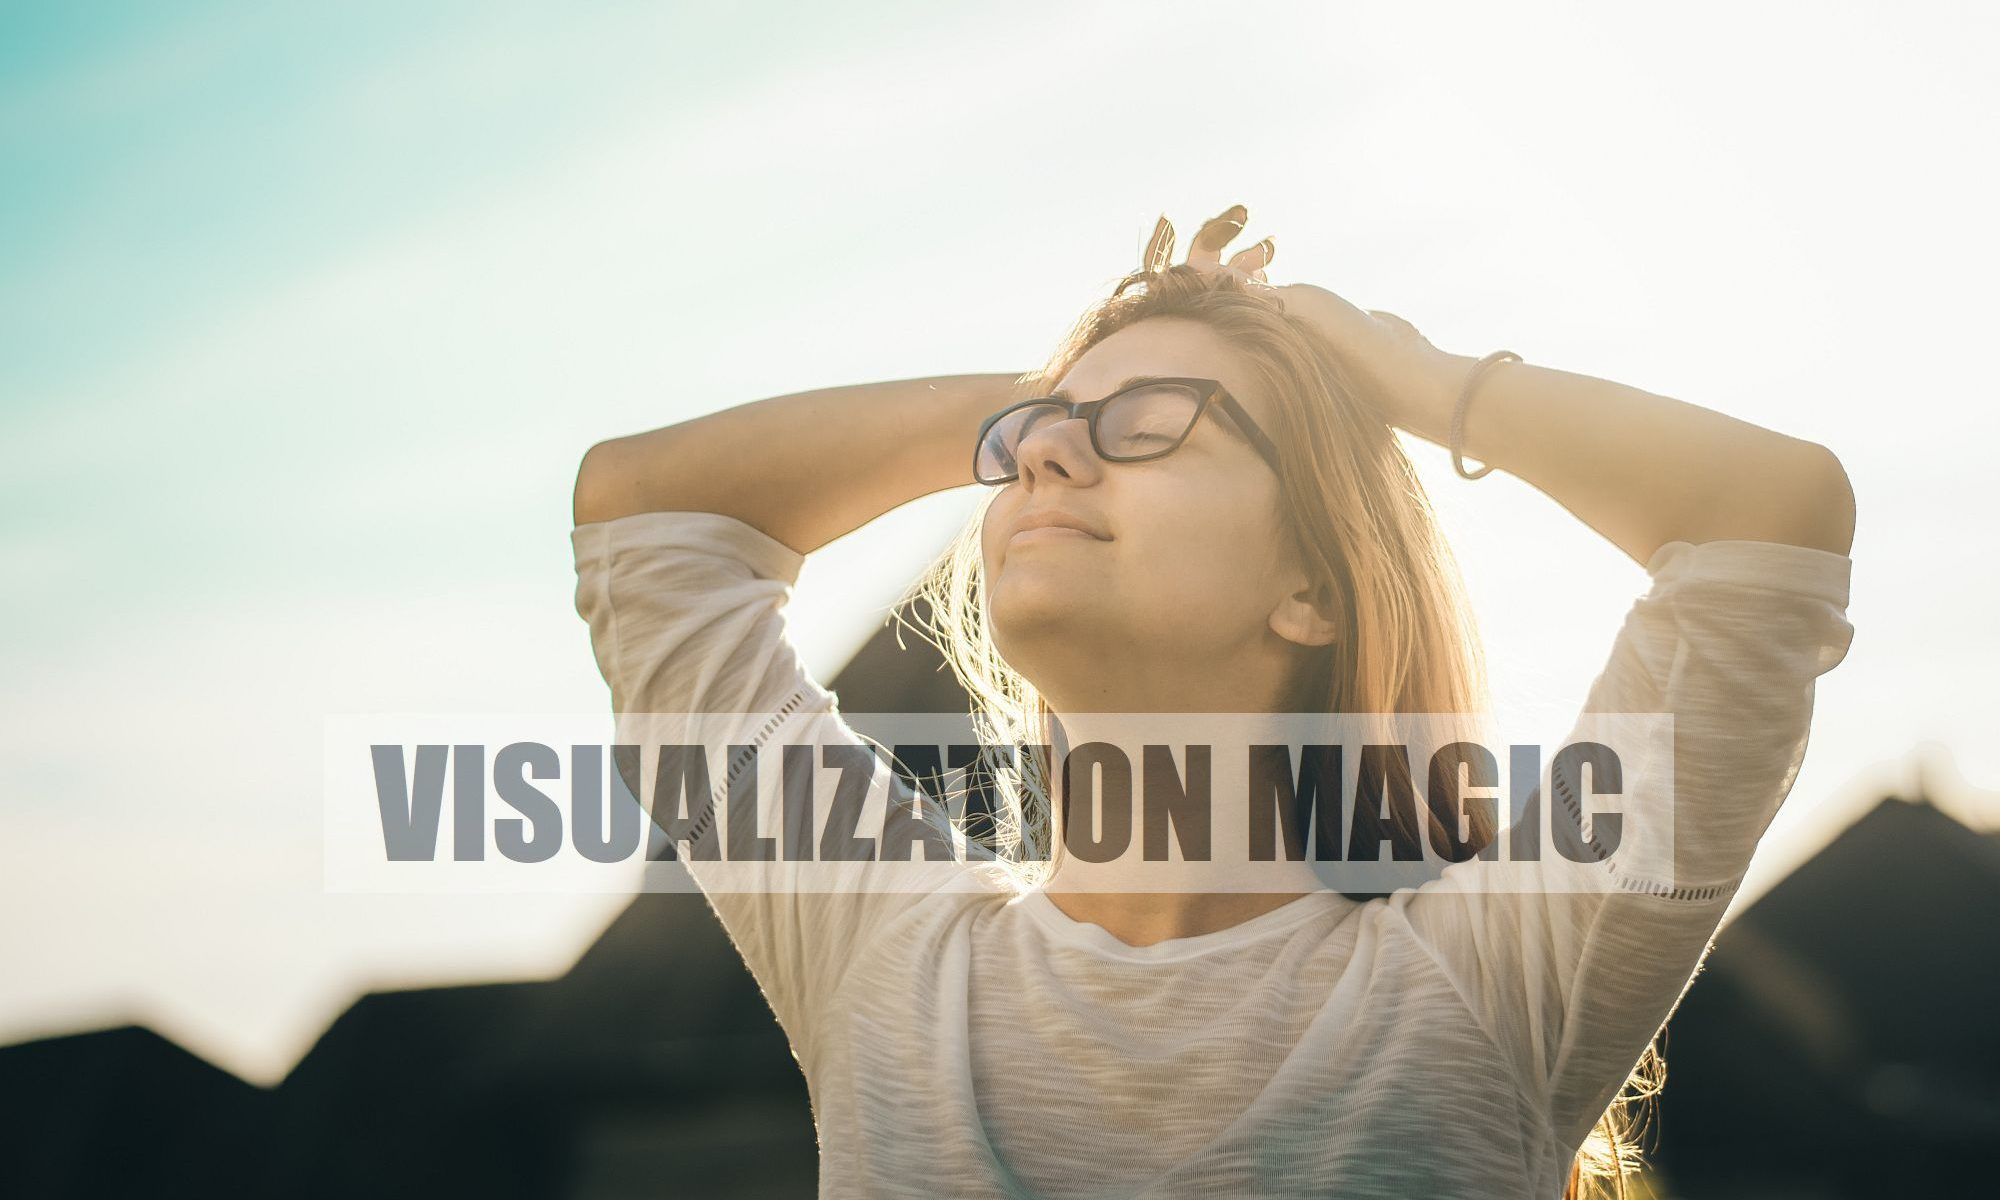 How-to-use-visualization-magic-imagination-to-materialize-events-2000